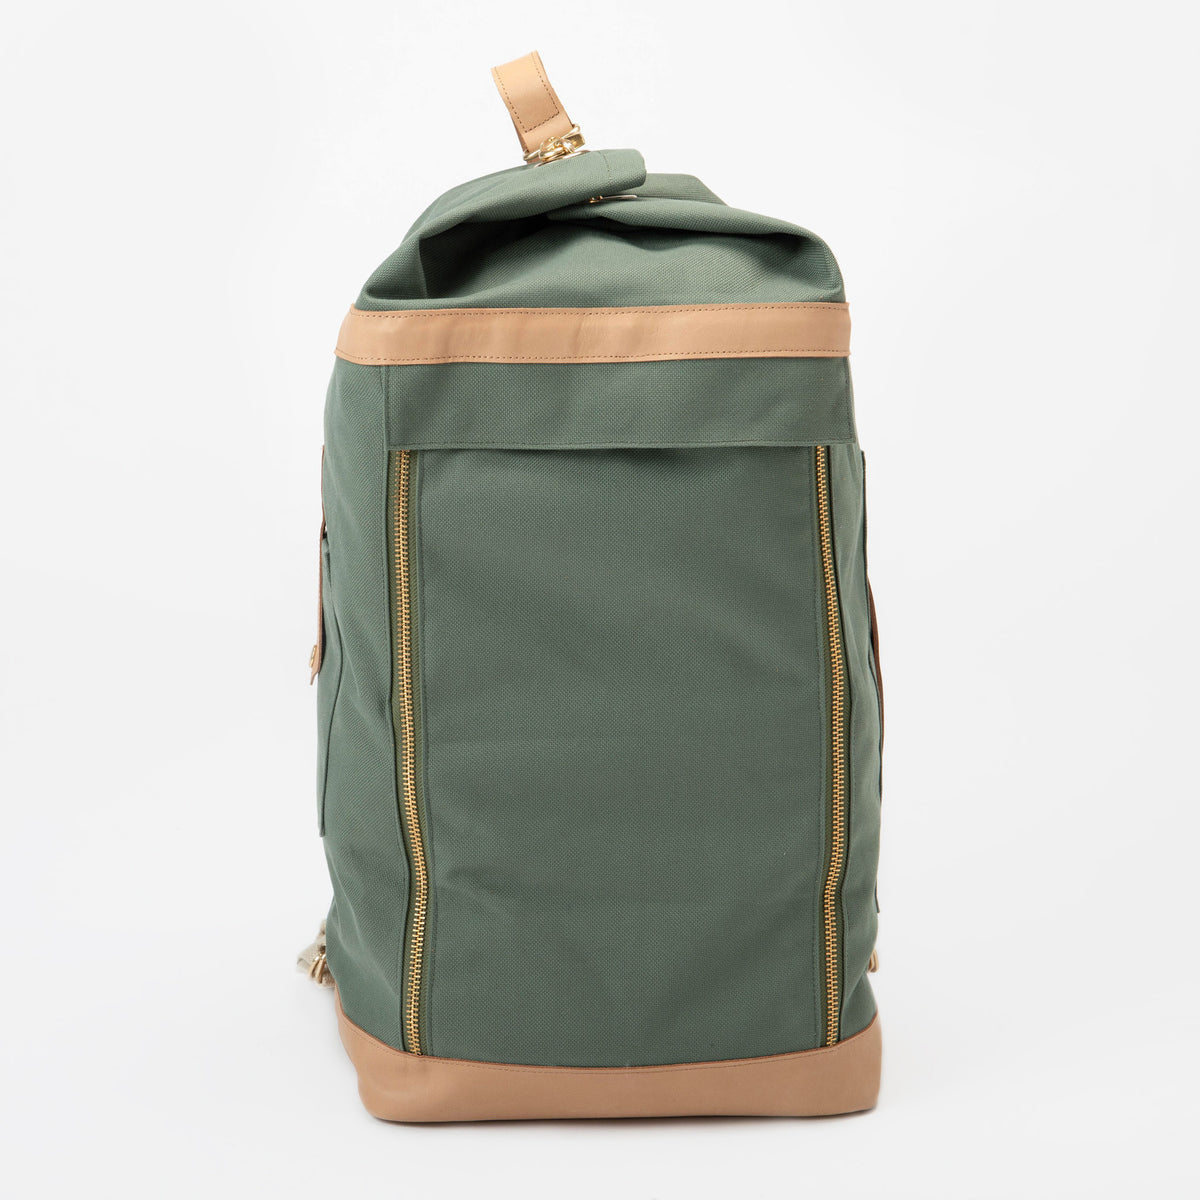 Green Weekend Bag